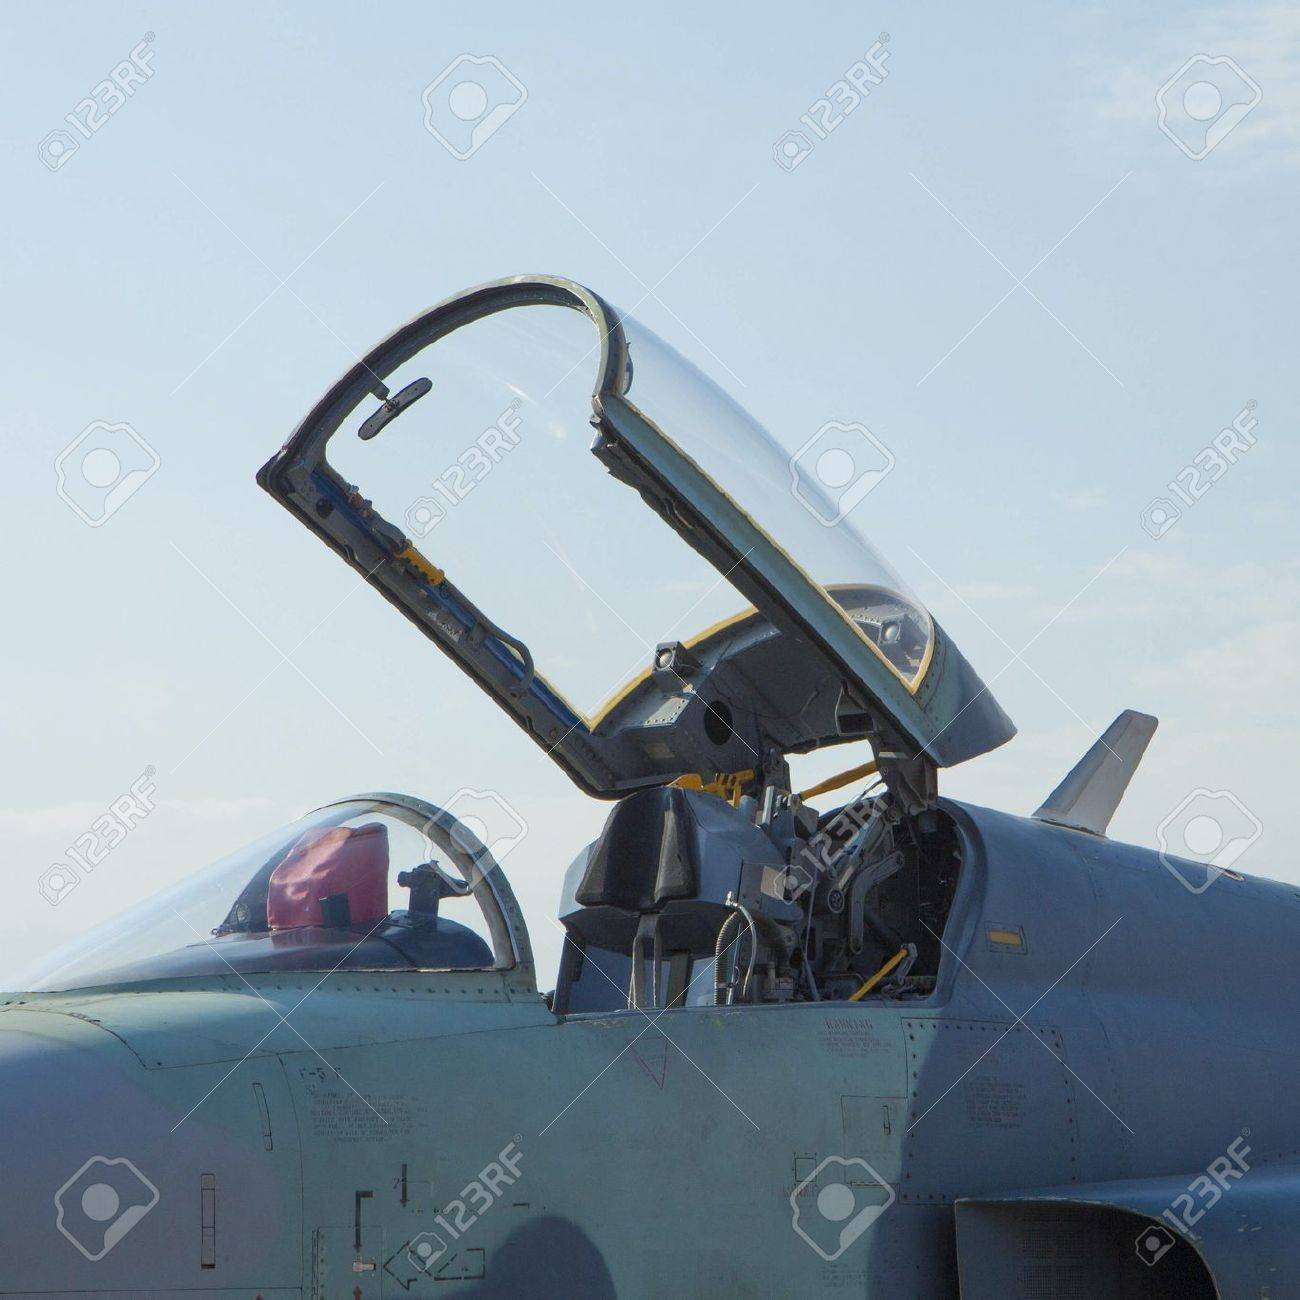 Closeup of military fighter jet cockpit and canopy against a blue sky Stock Photo - 19330153 & Closeup Of Military Fighter Jet Cockpit And Canopy Against A ...